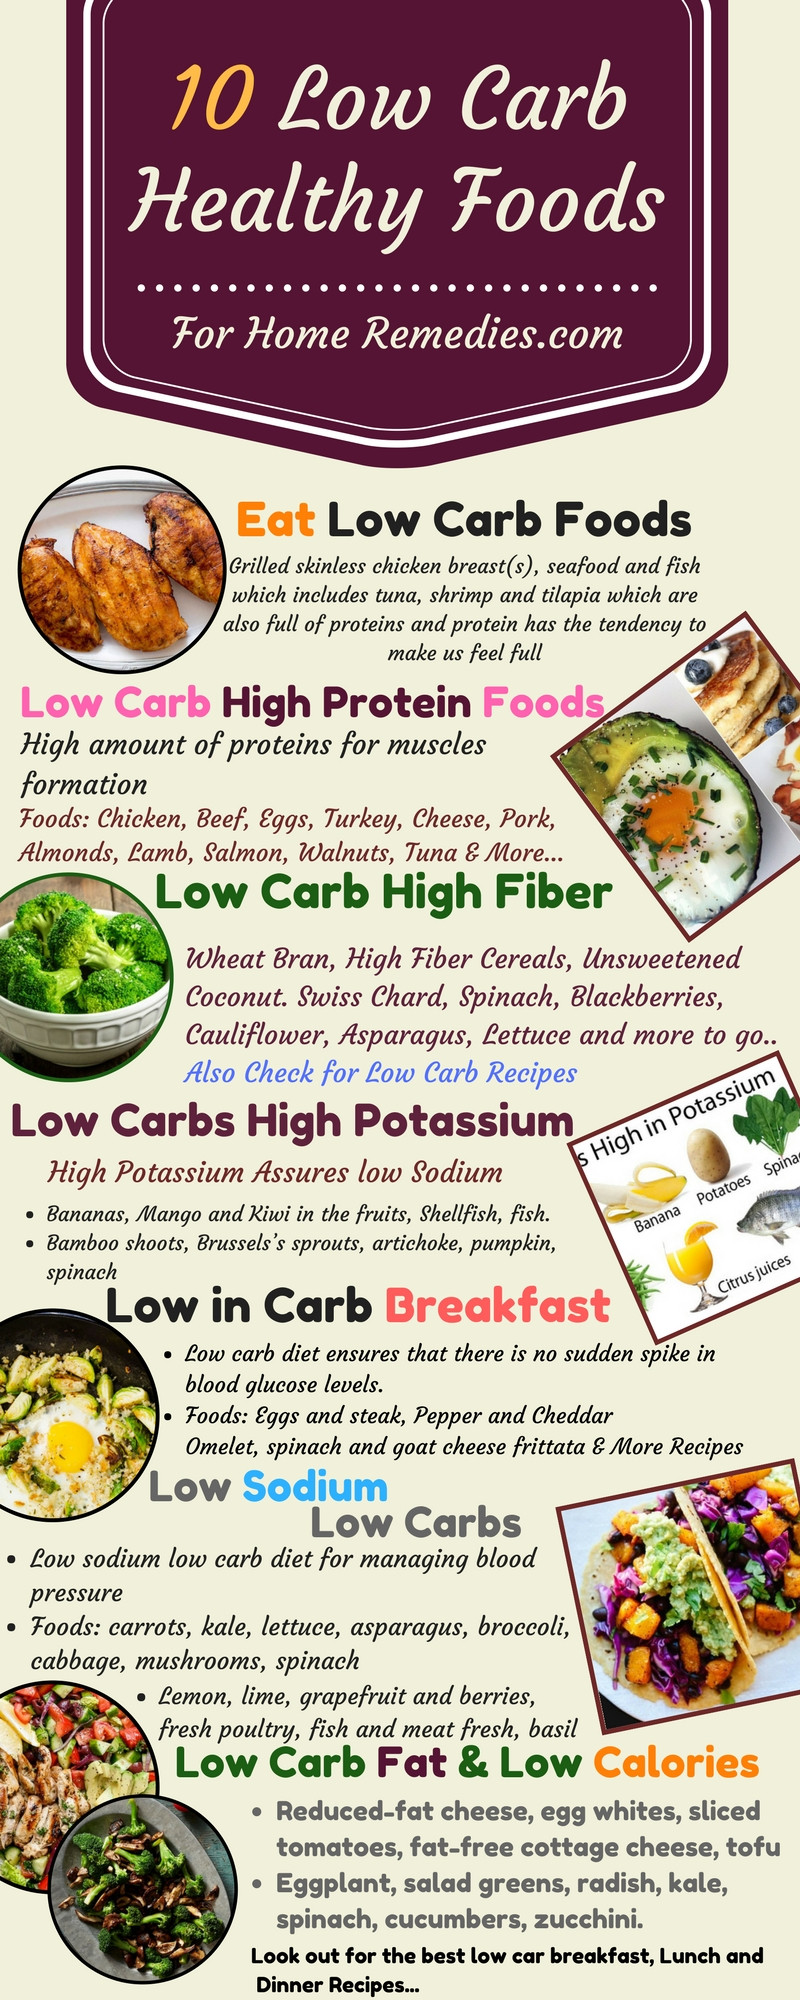 Low Sodium Low Cholesterol Recipes  high fiber low carb breakfast